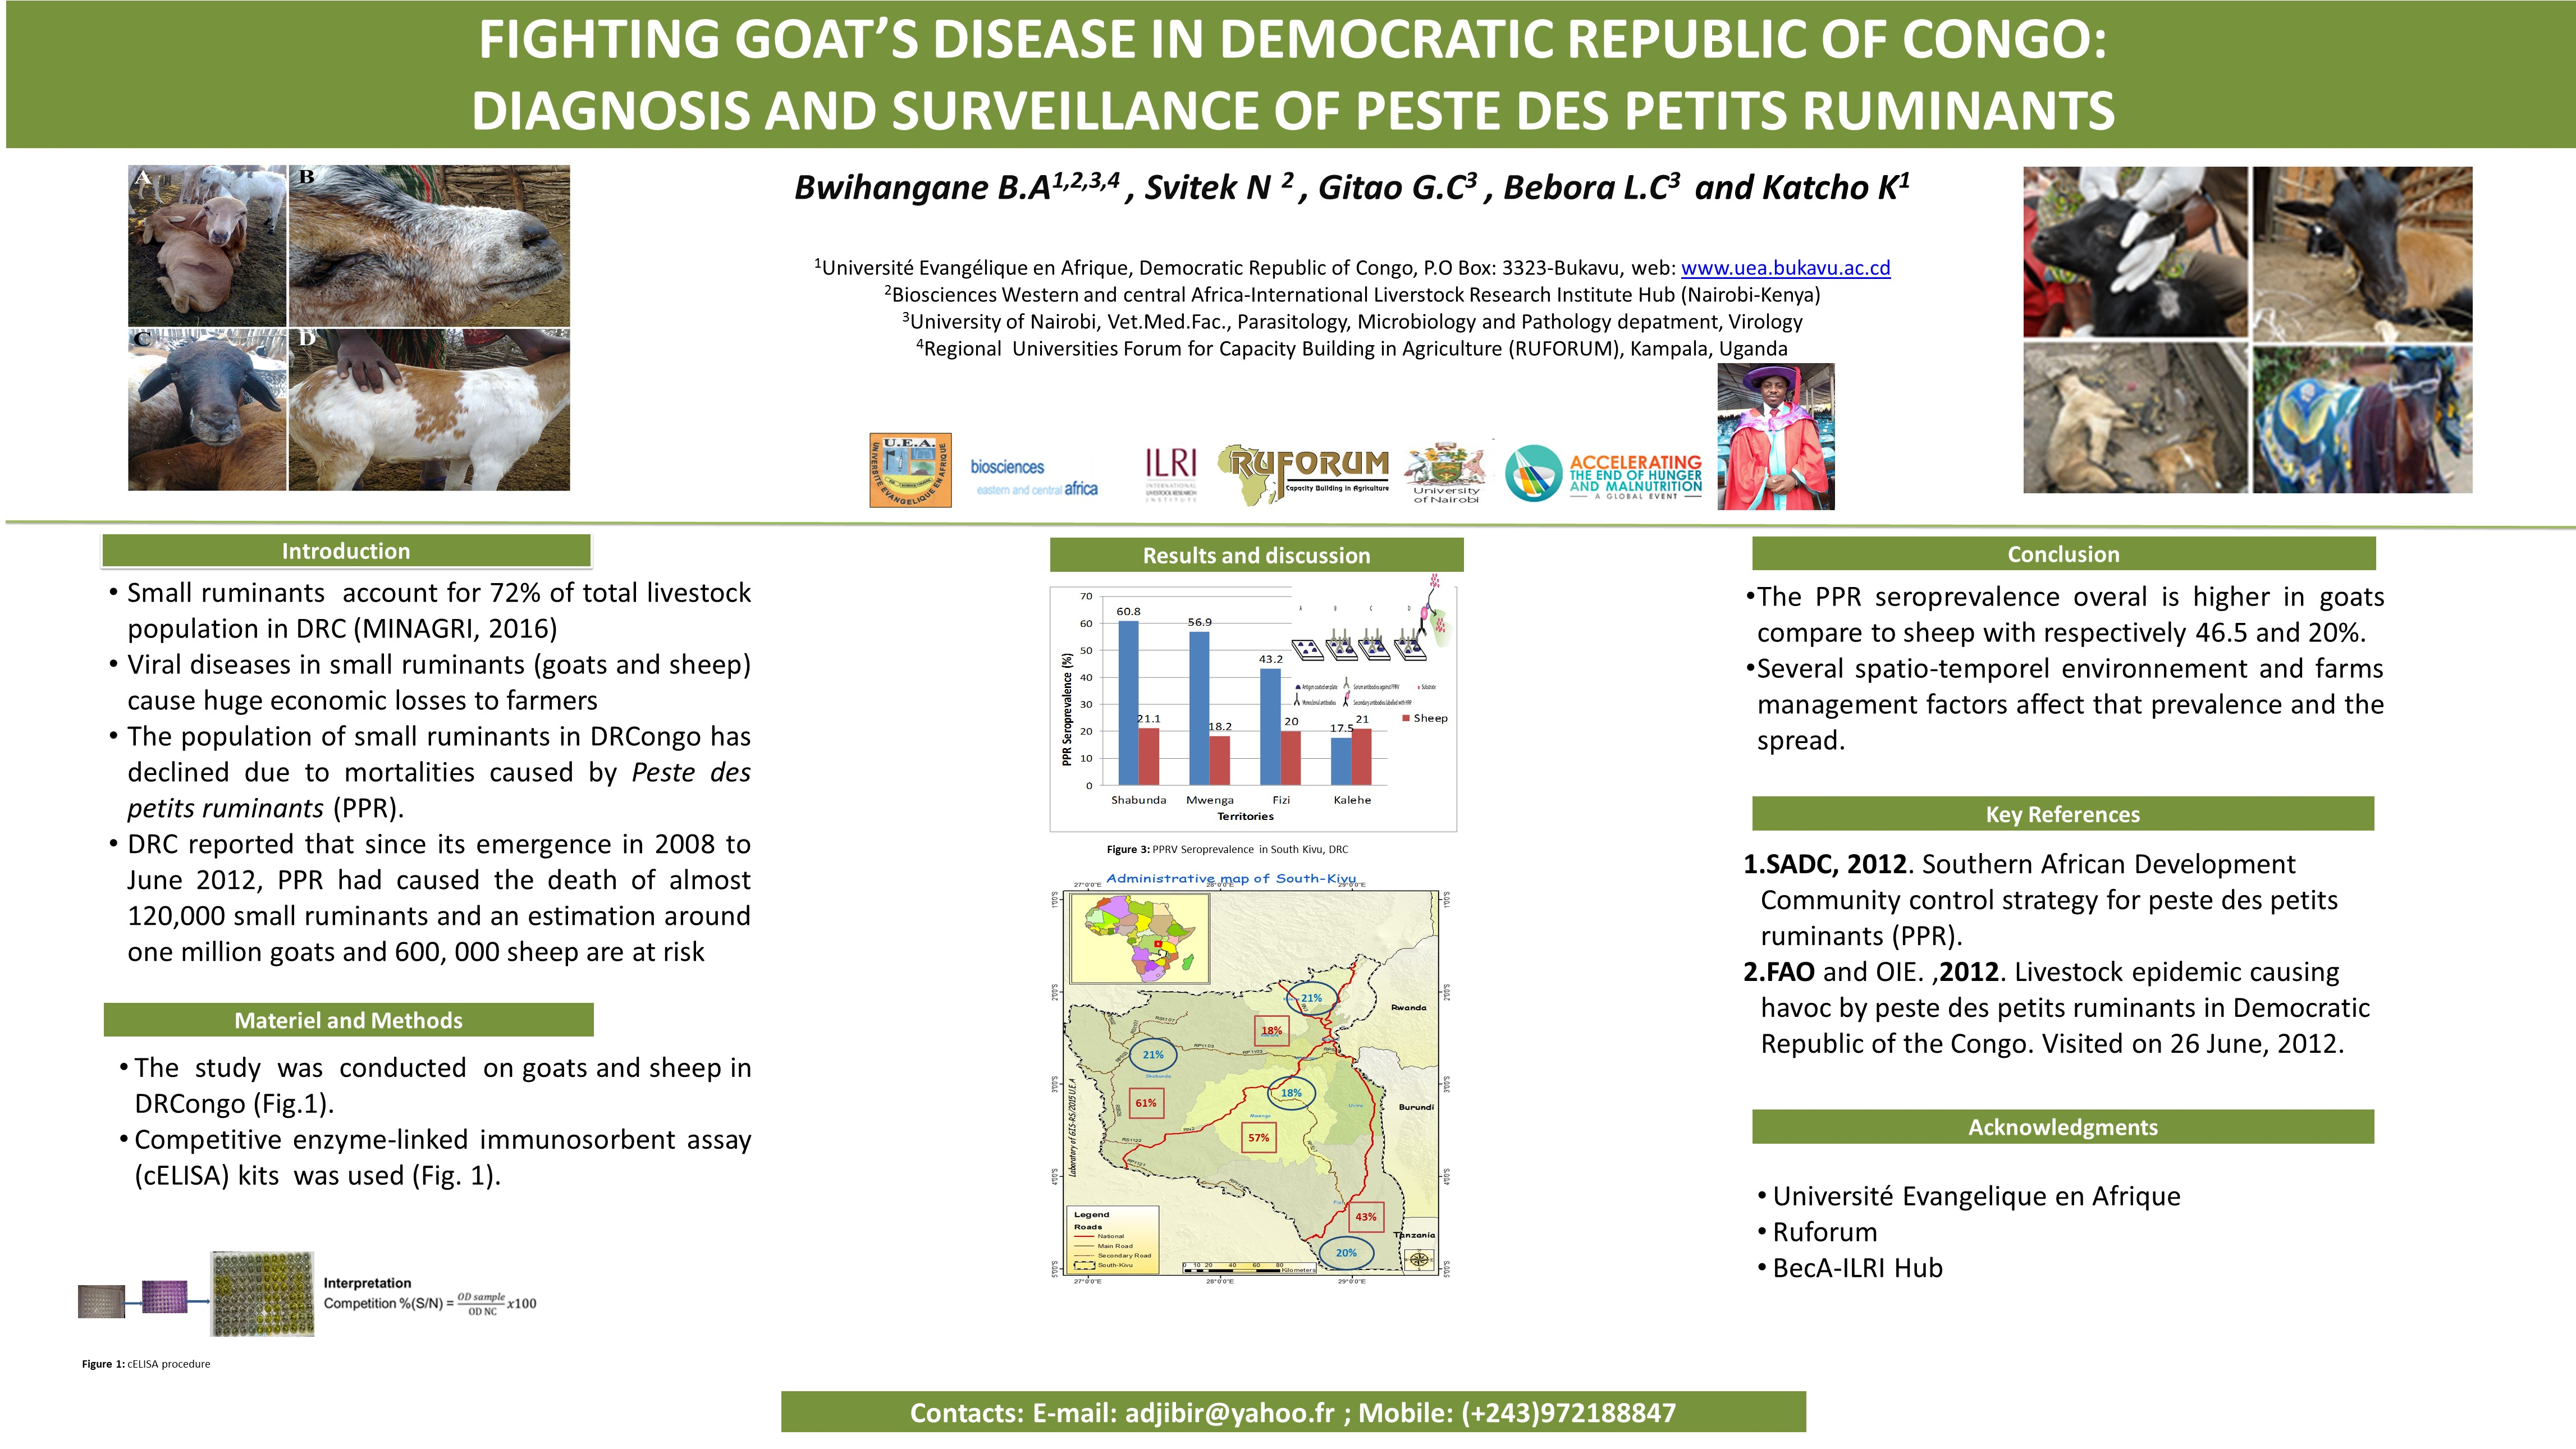 Fighting Goat's Disease in Democratic Republic of Congo: Diagnosis and Surveillance of Peste Des Petits Ruminants